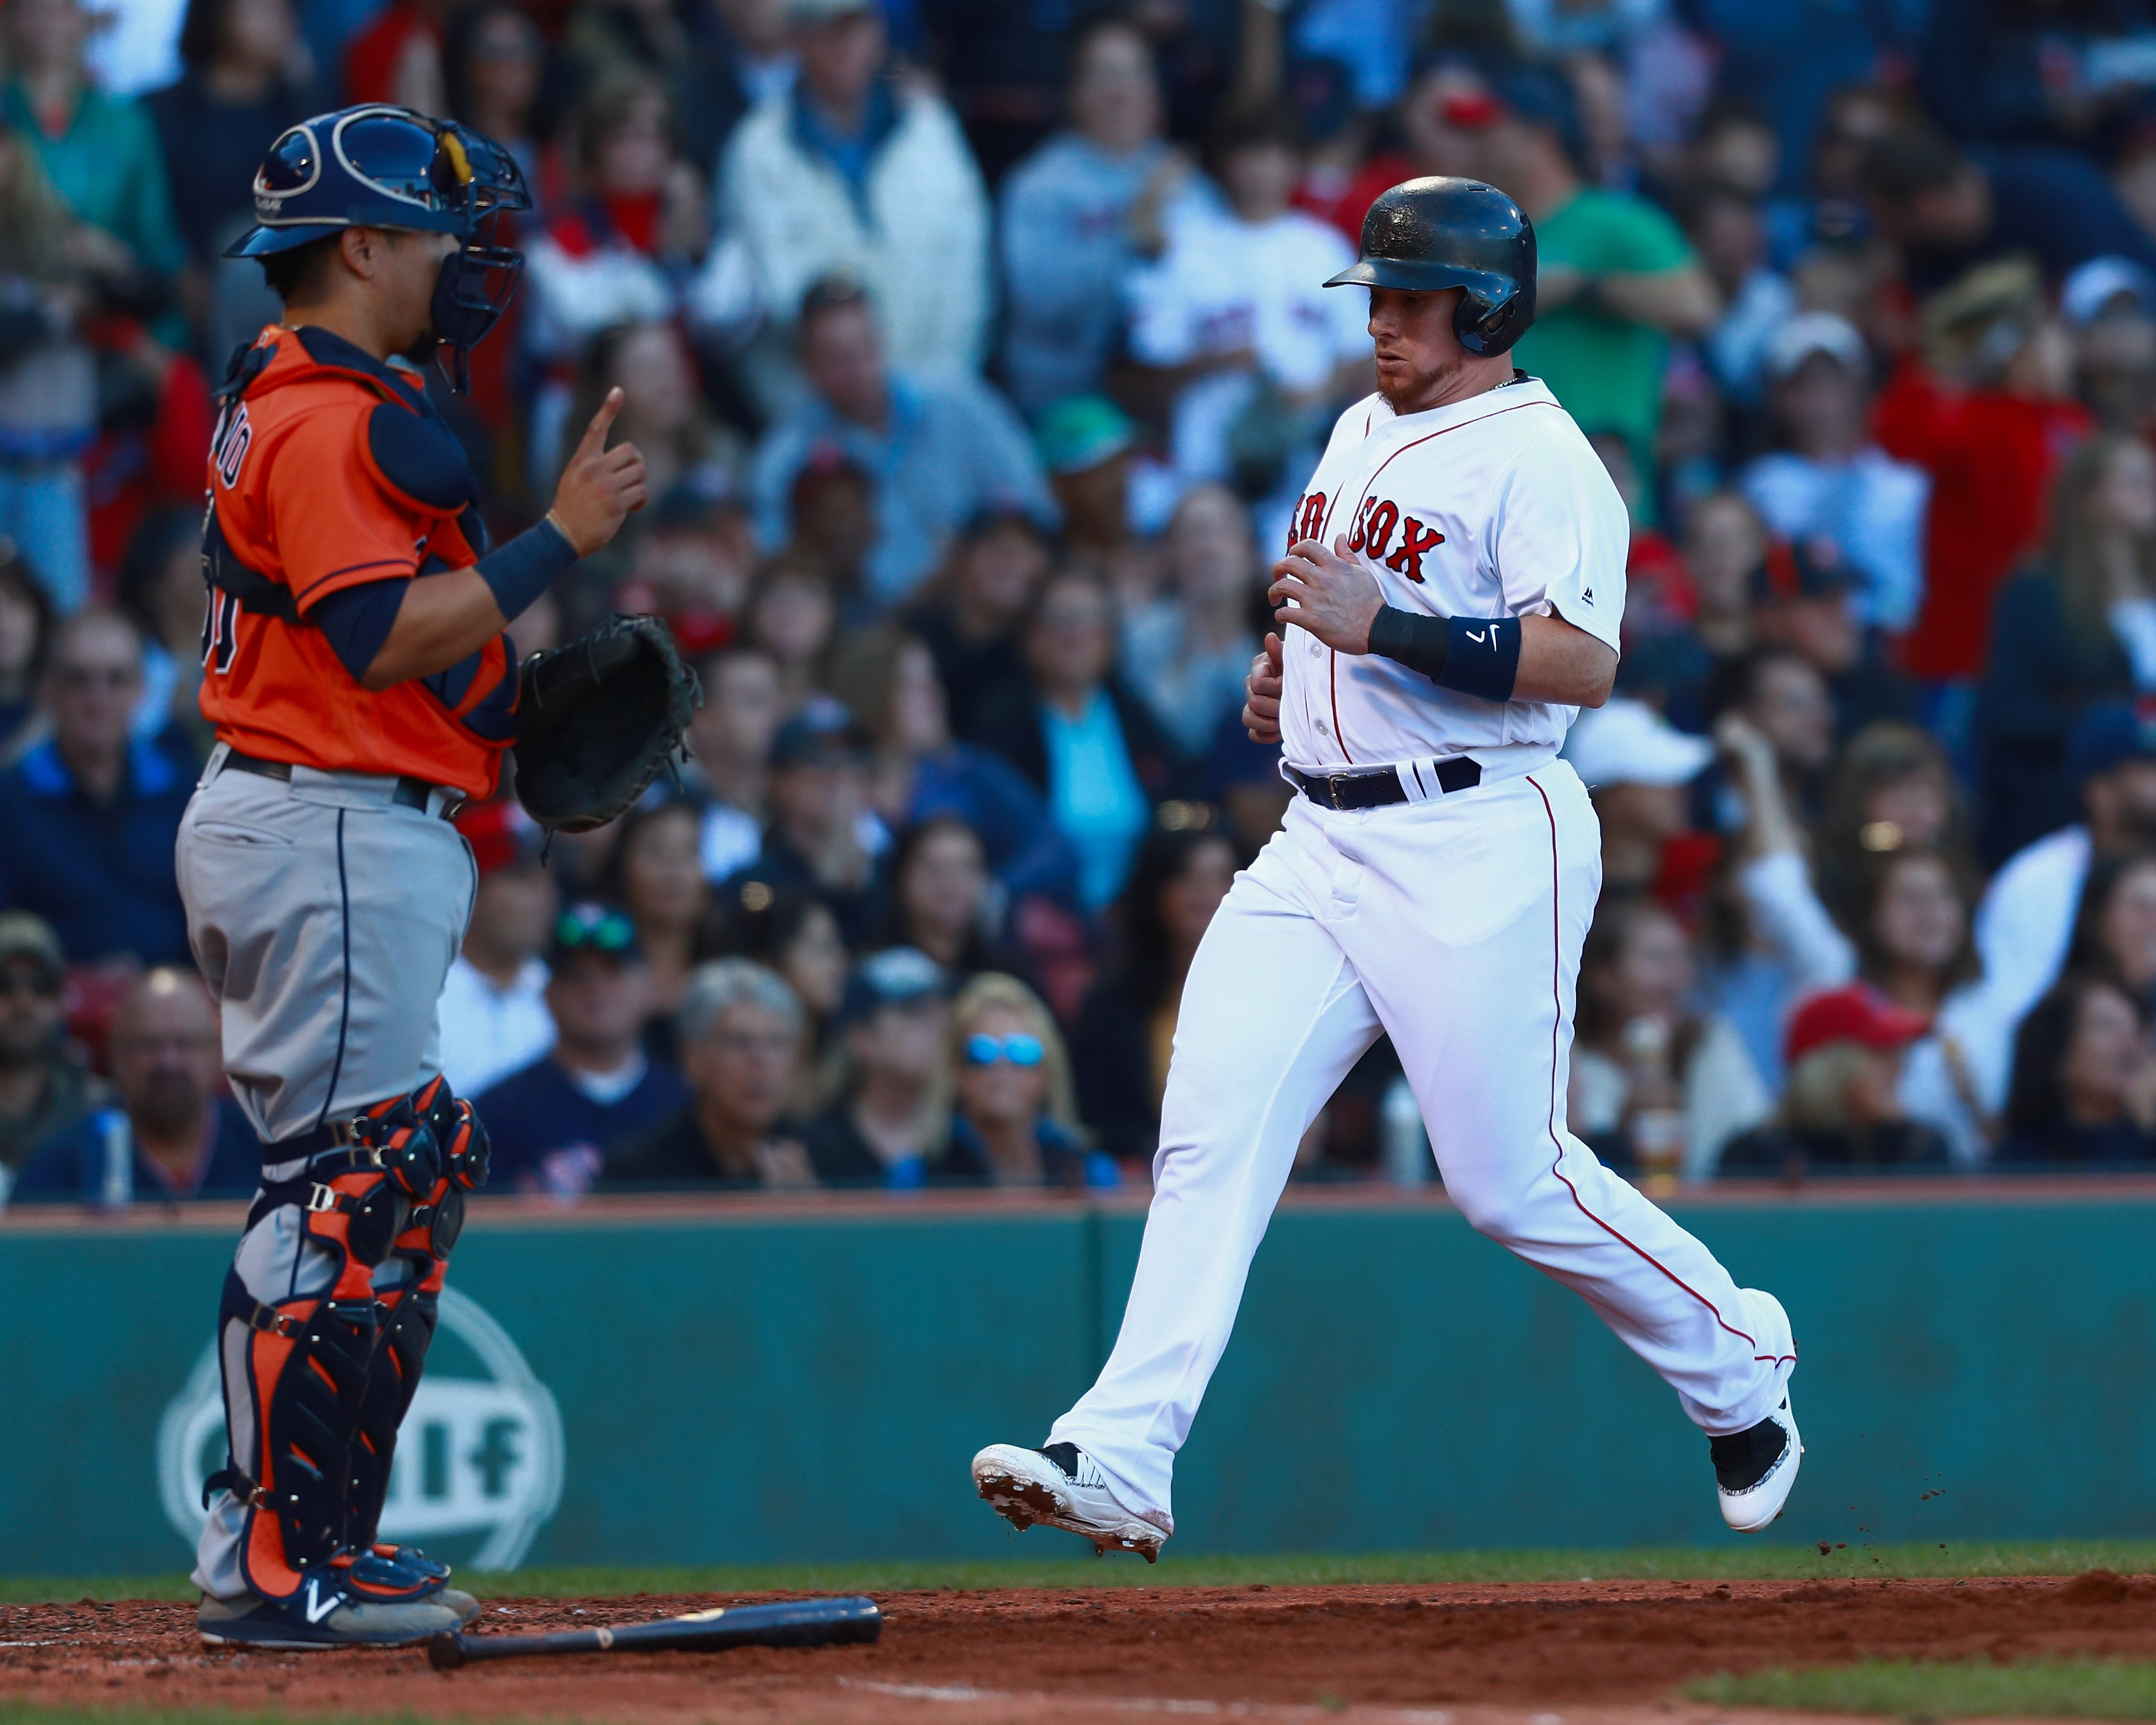 ALDS: Red Sox Vs Astros Game Schedule, Matchups, and Broadcast Schedule